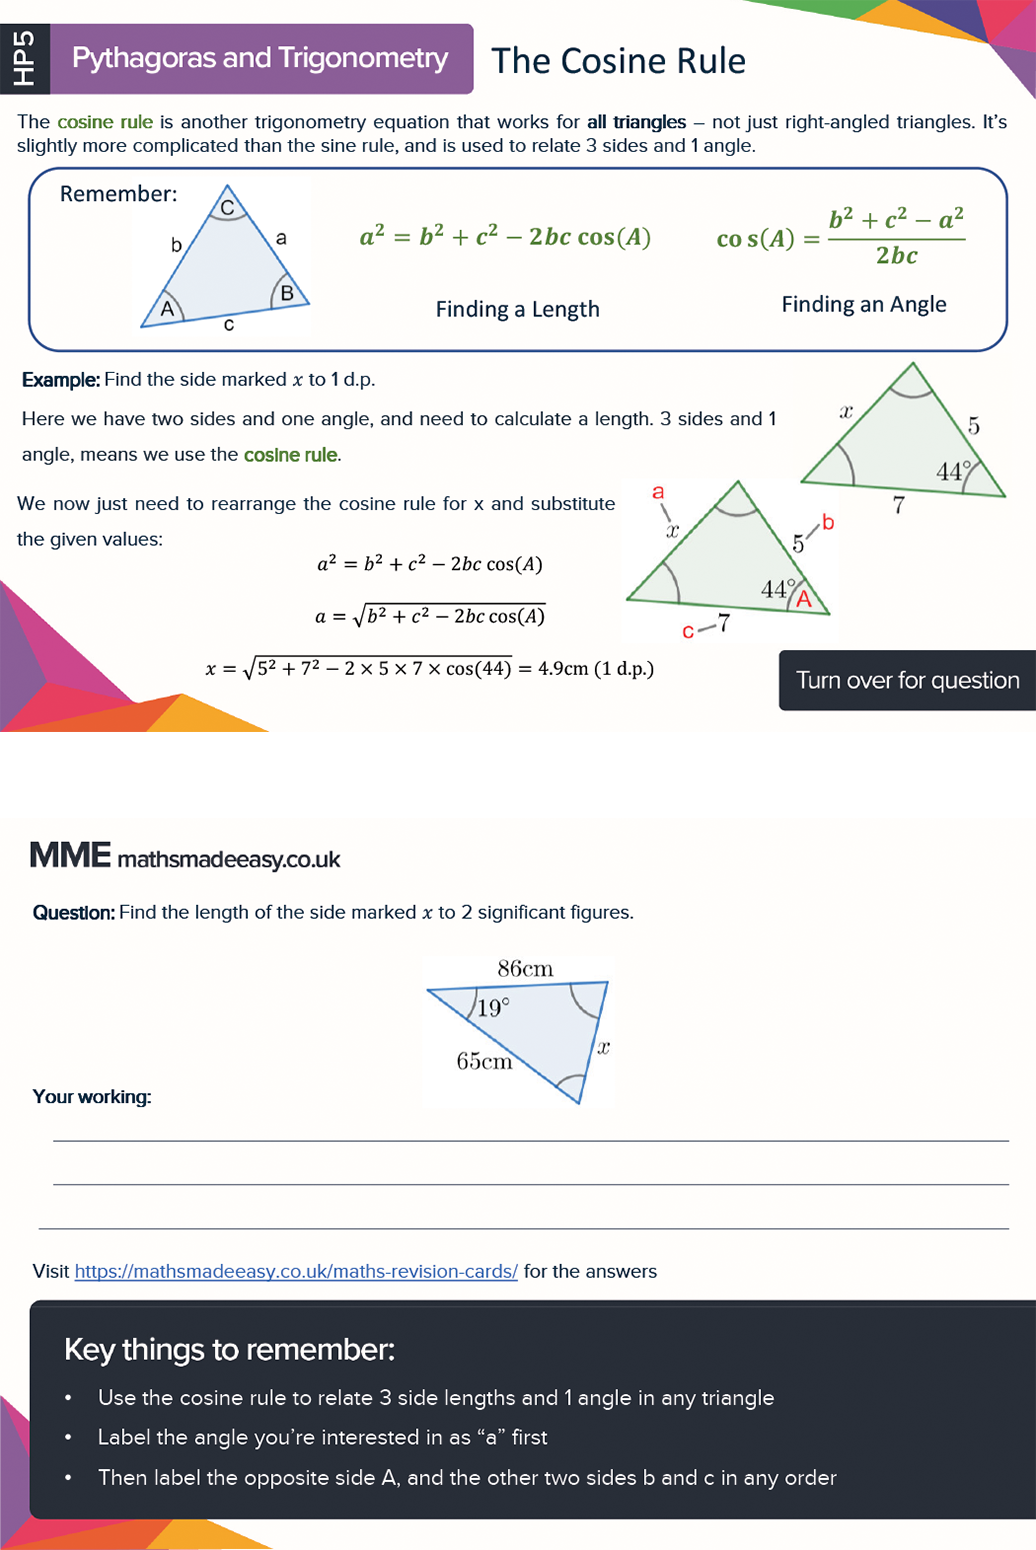 More features of GCSE Maths revision cards